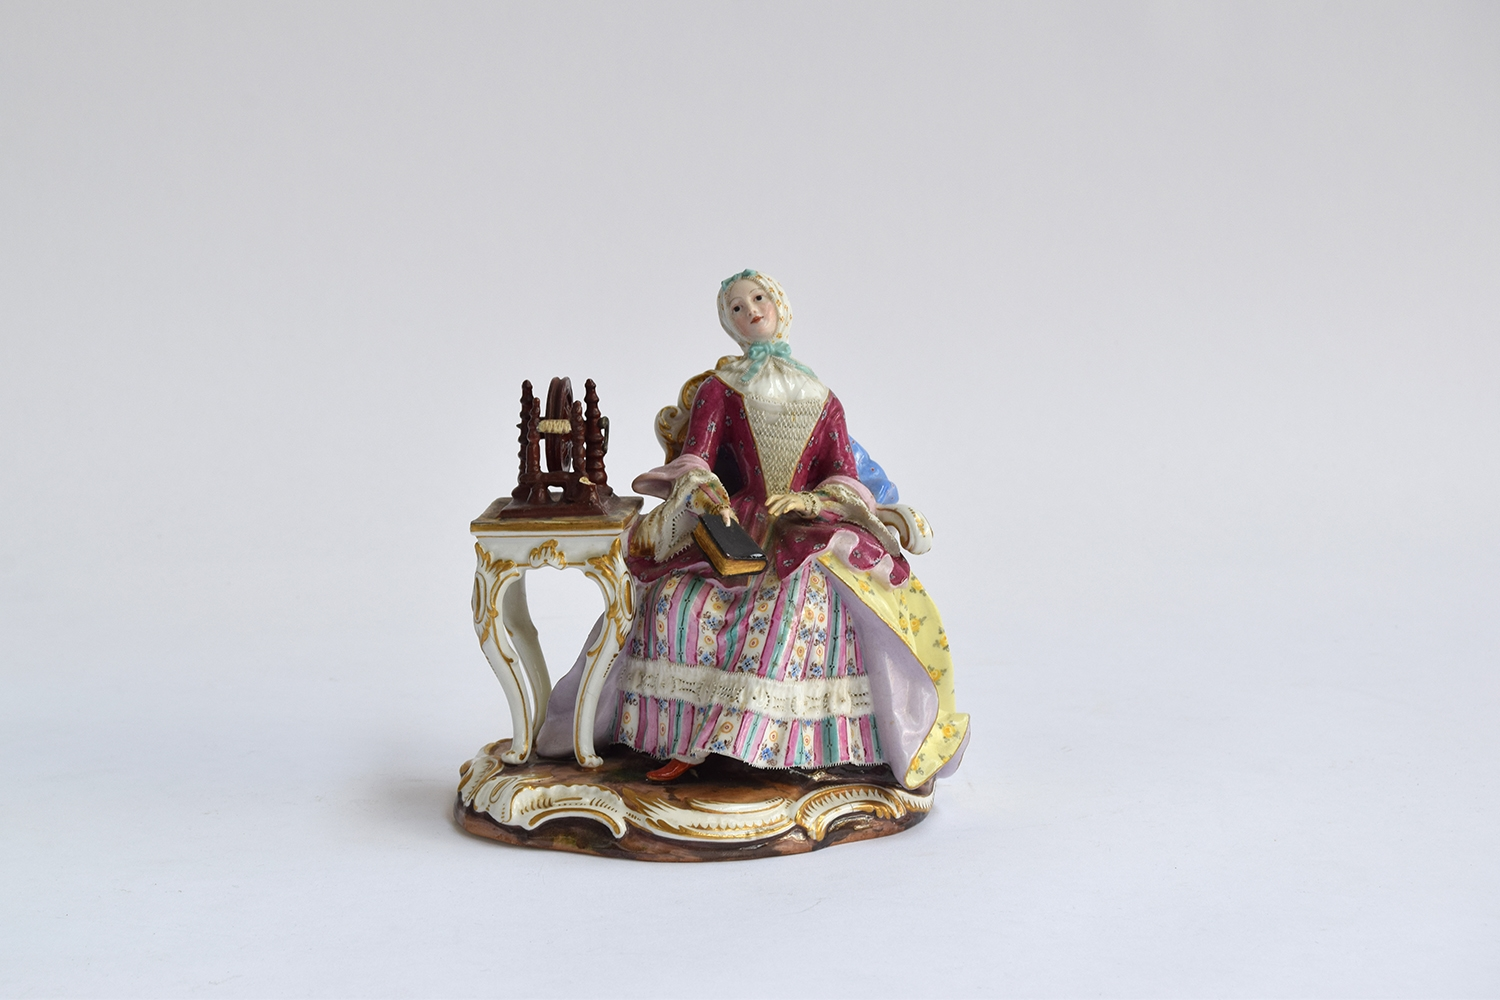 A 19th century Meissen group of a seated lady at a spinning wheel, 'The Good Housekeeper' or '